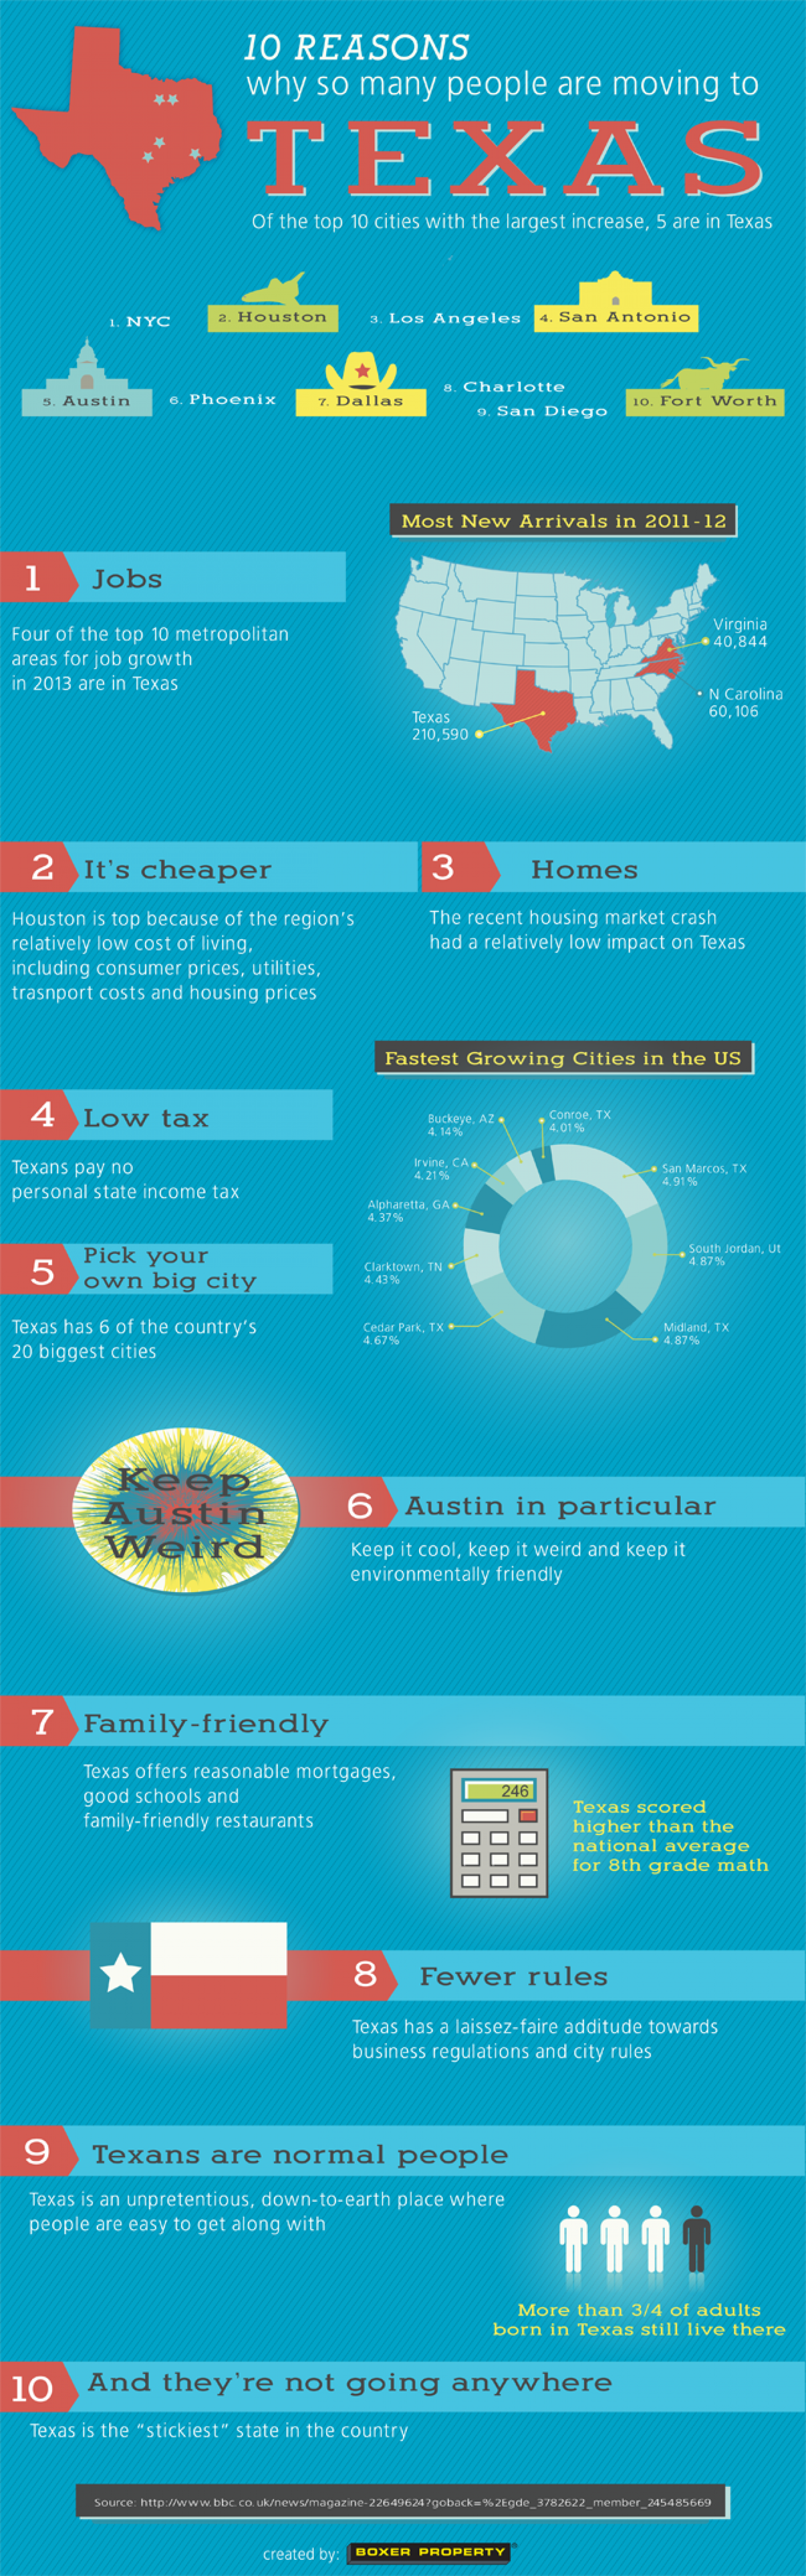 10 Reasons Why People are Moving to Texas Infographic